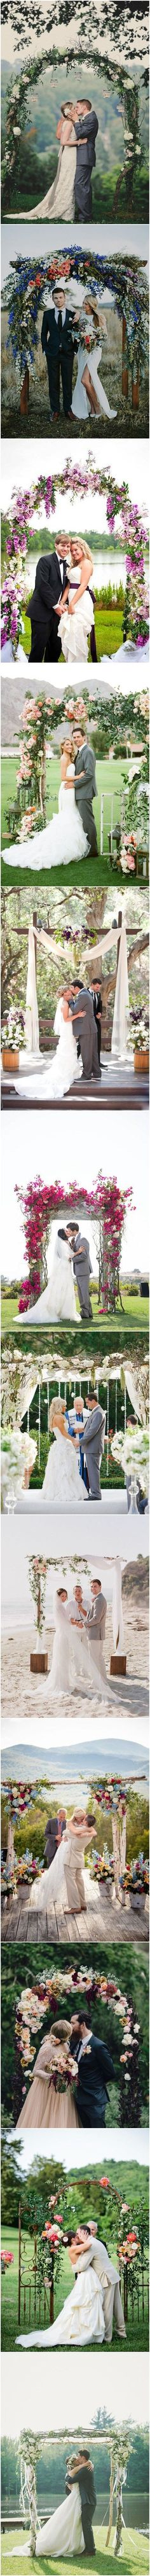 Rustic Wedding Ideas - 26 Floral Wedding Arches Decorating Ideas http://www.deerpearlflowers.com/26-floral-wedding-arches-decorating-ideas/